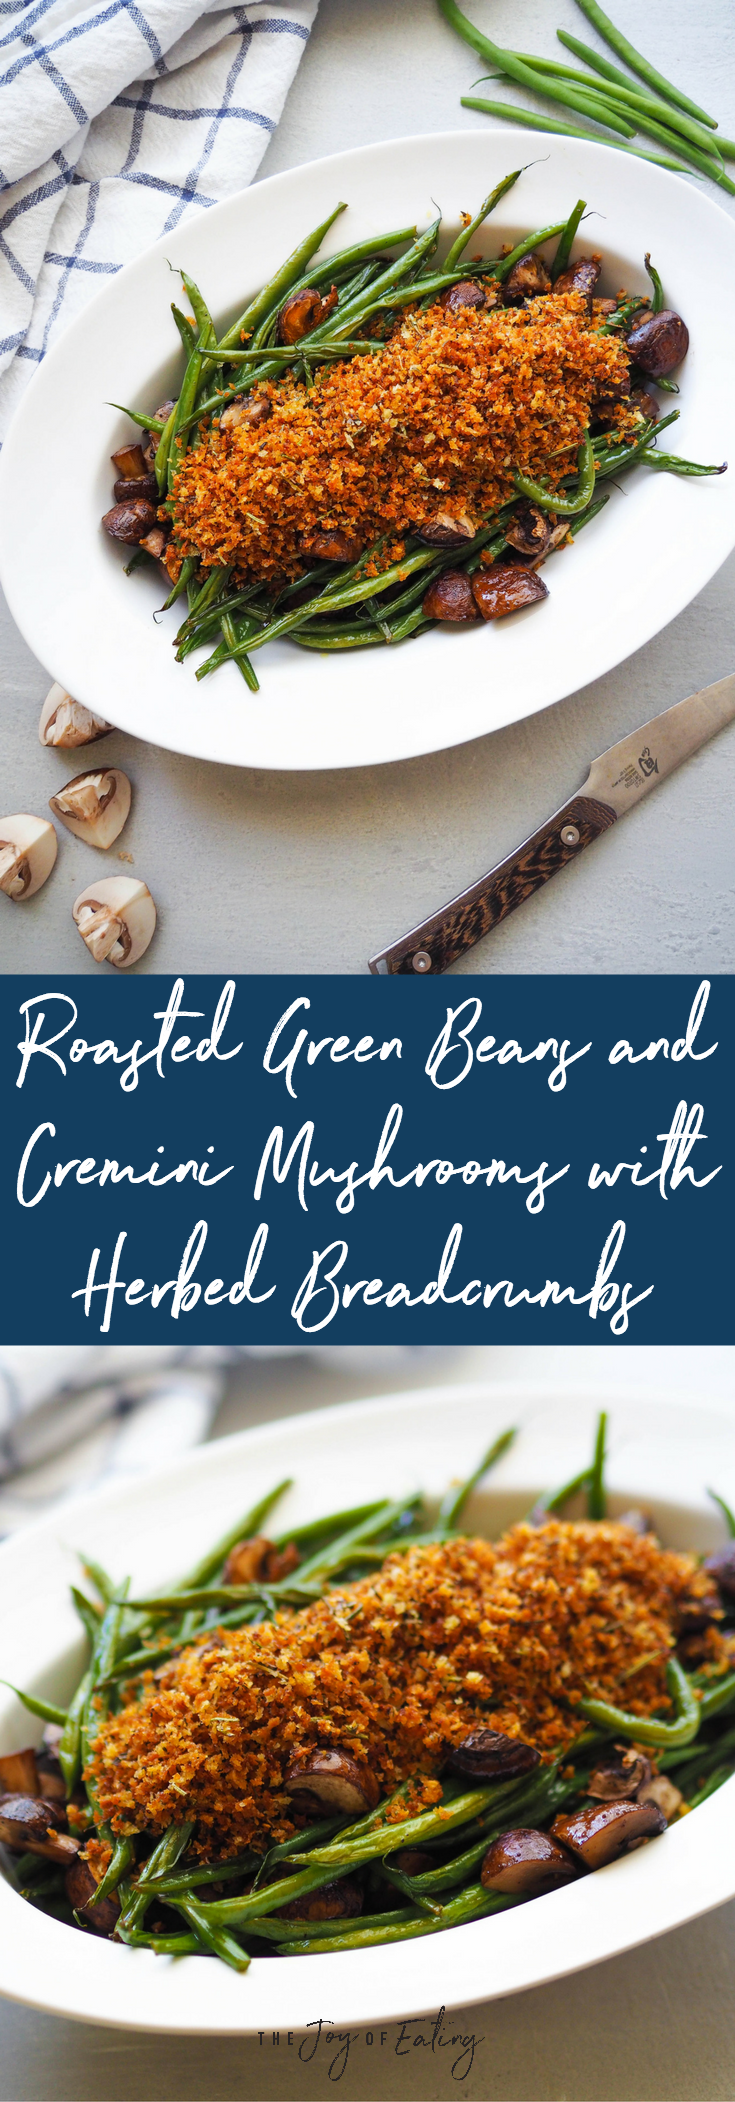 roasted green beans and cremini mushrooms with herbed breadcrumbs.png